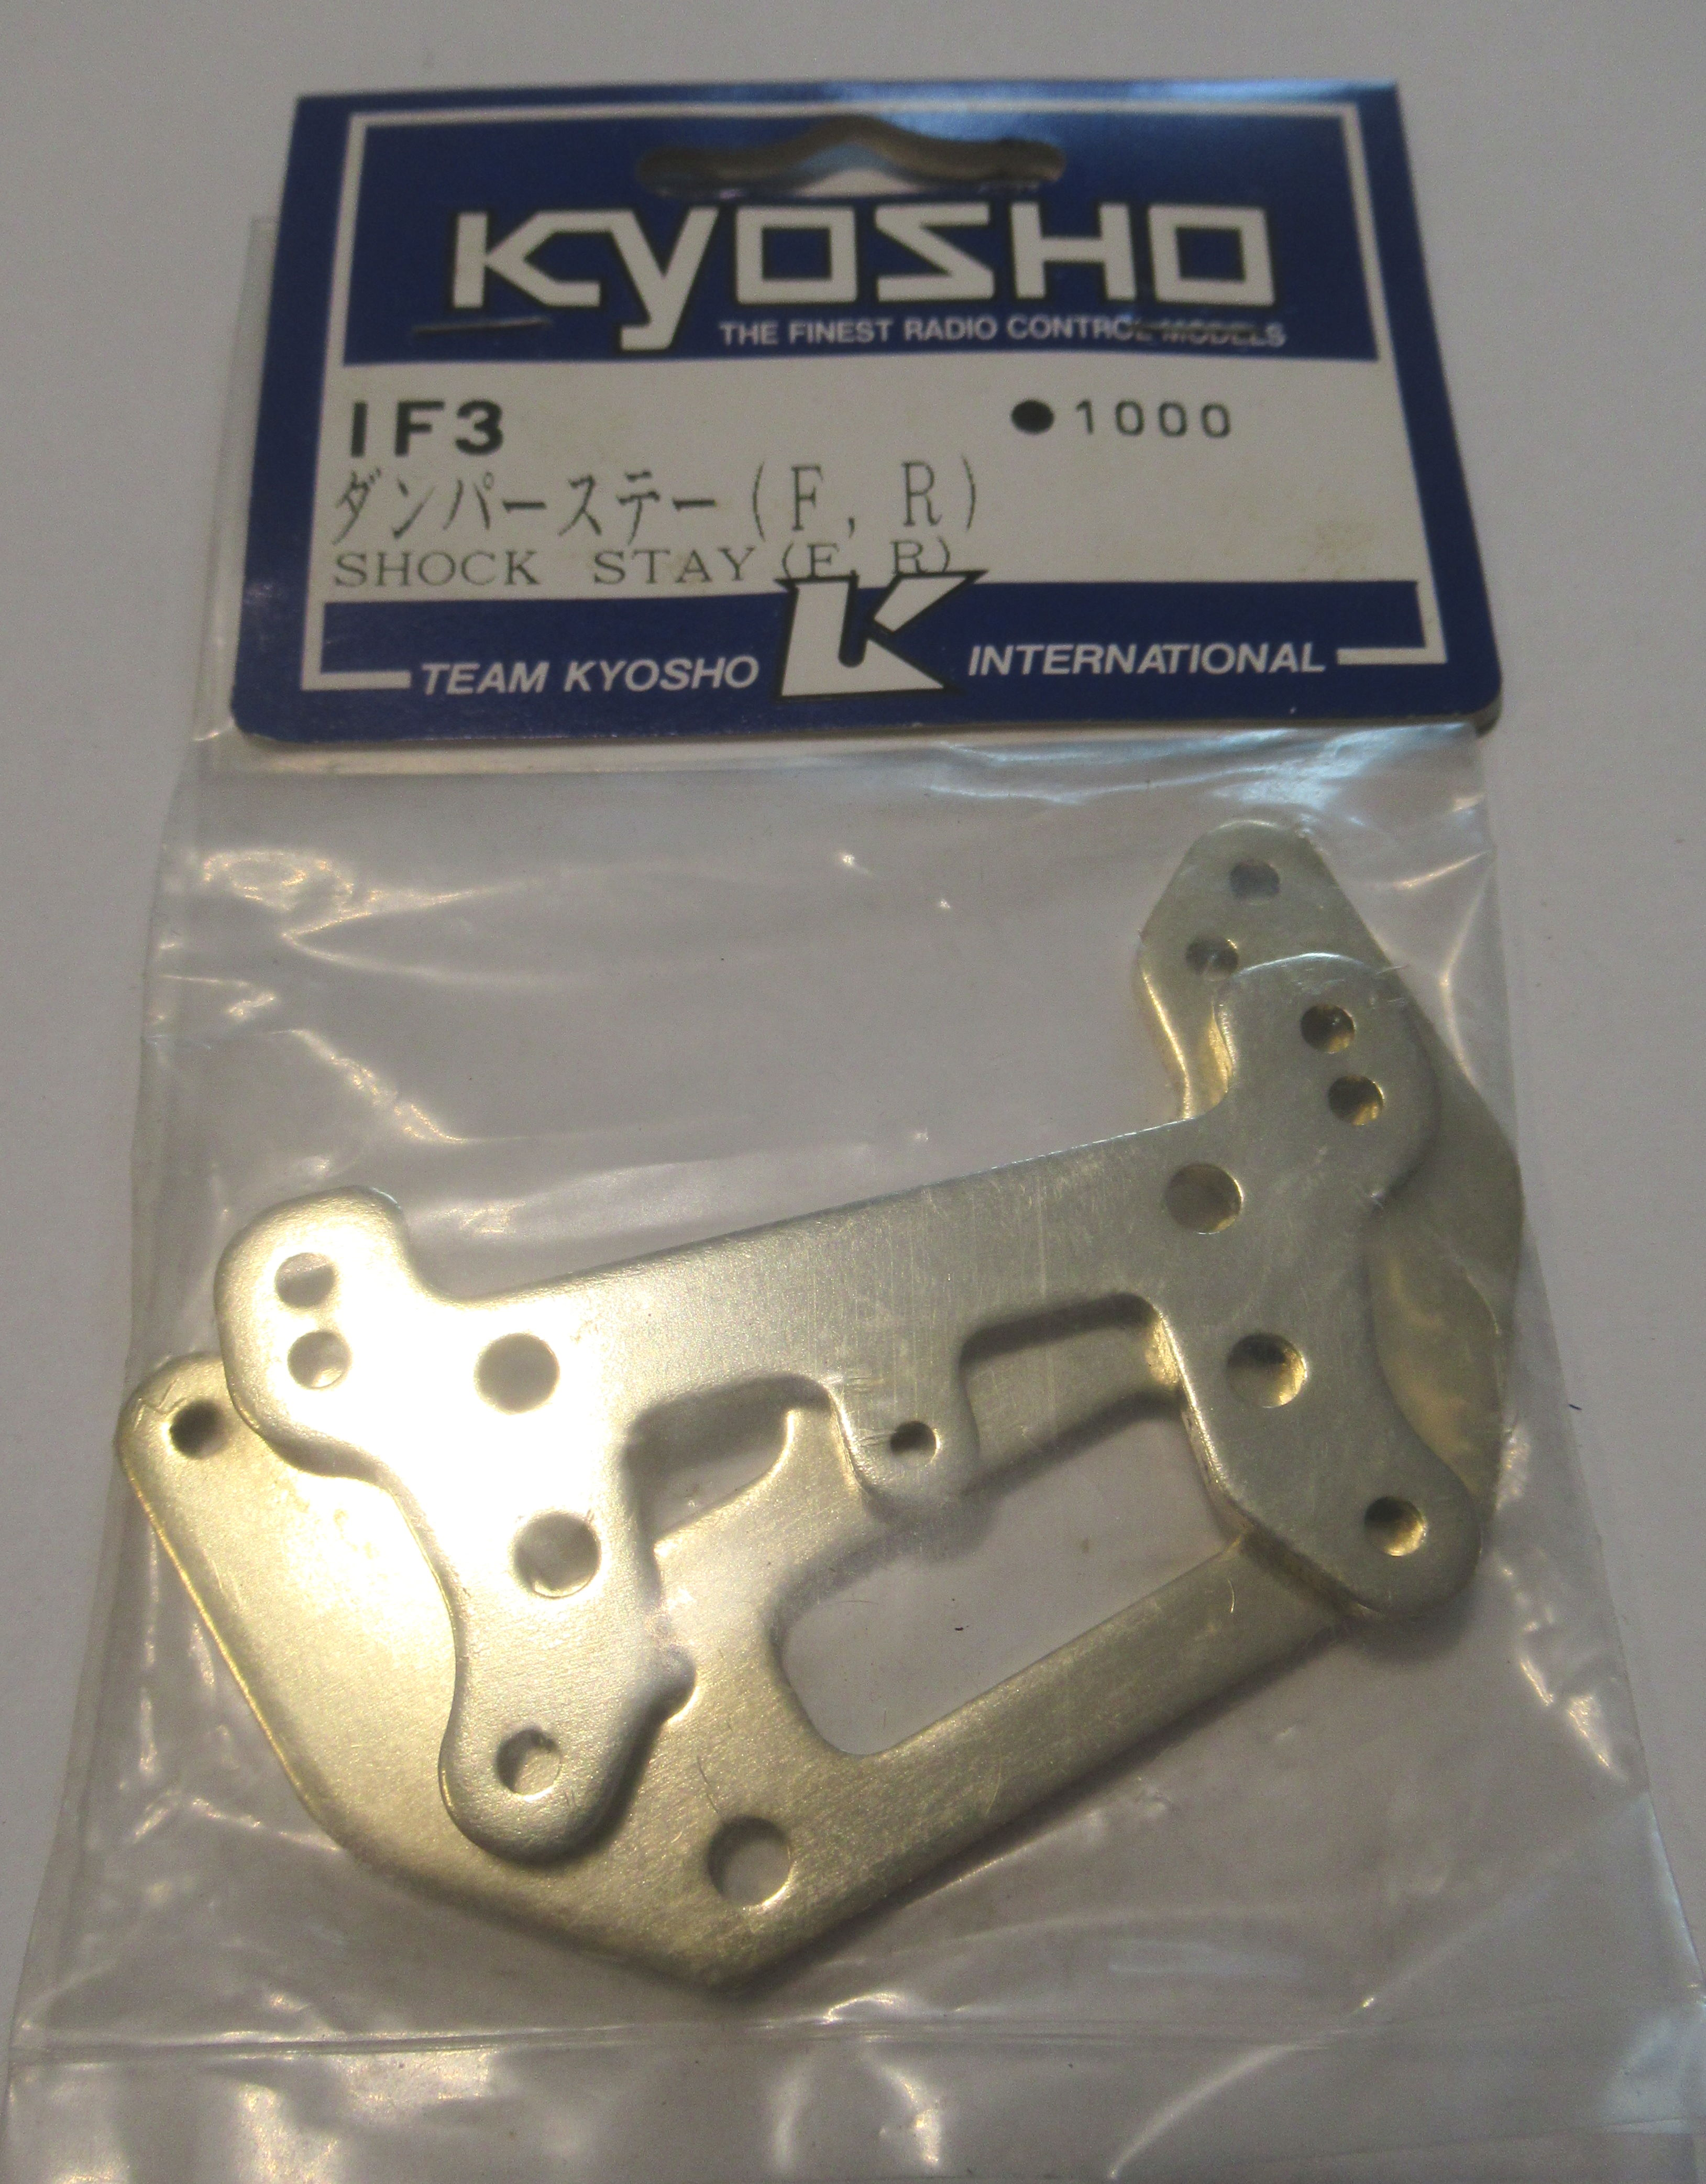 Kyosho IF3 Shock Stay, front + rear